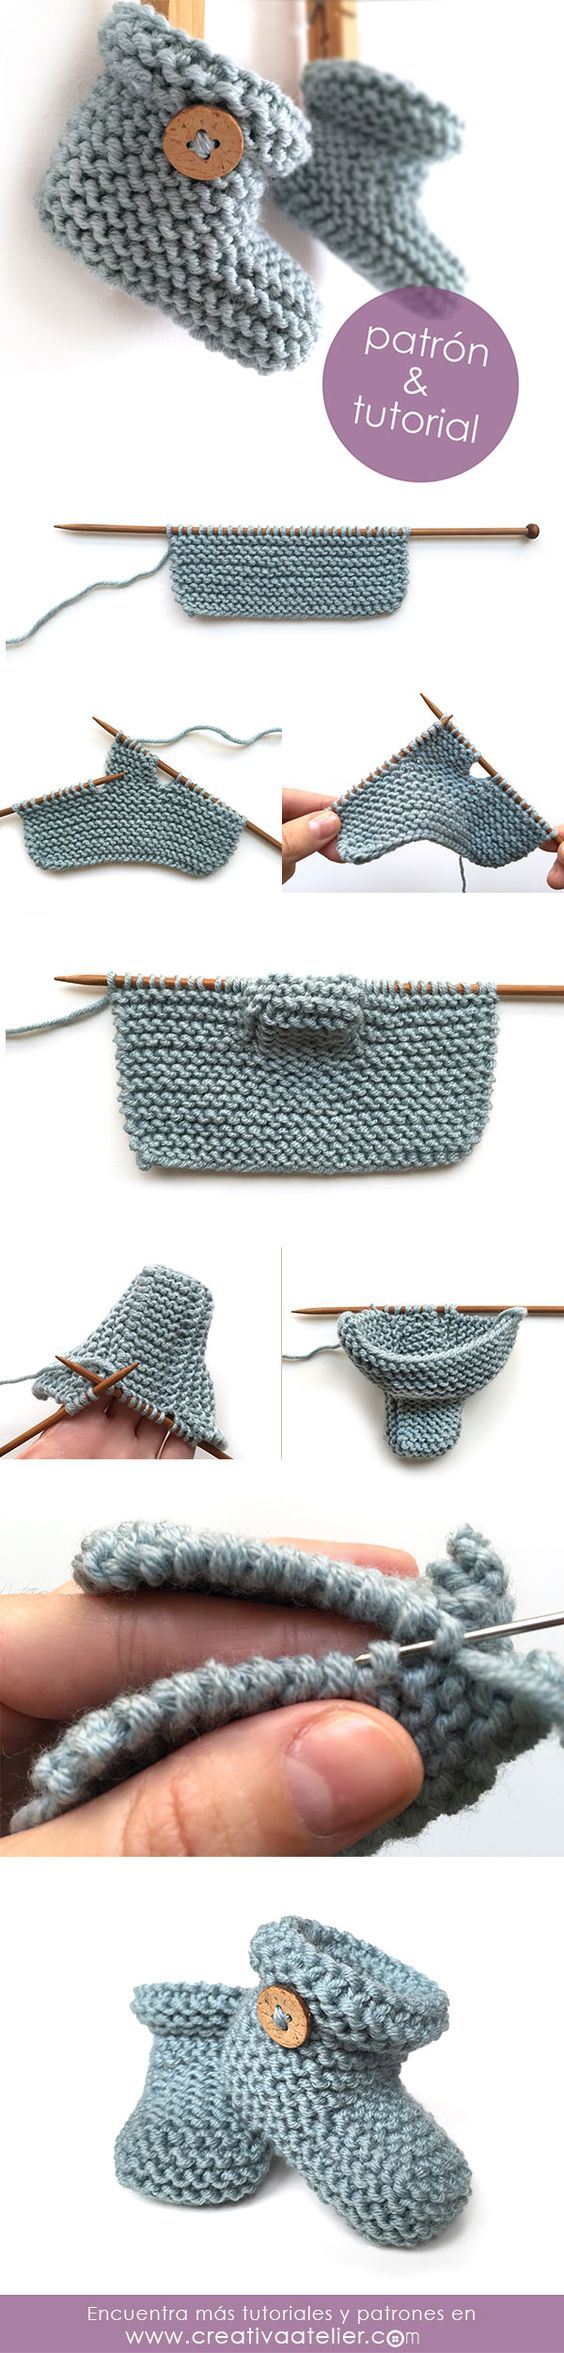 Patucos de punto sencillos - Tutorial y patrón -  Simple Knitted Baby booties - Pattern and tutorial: